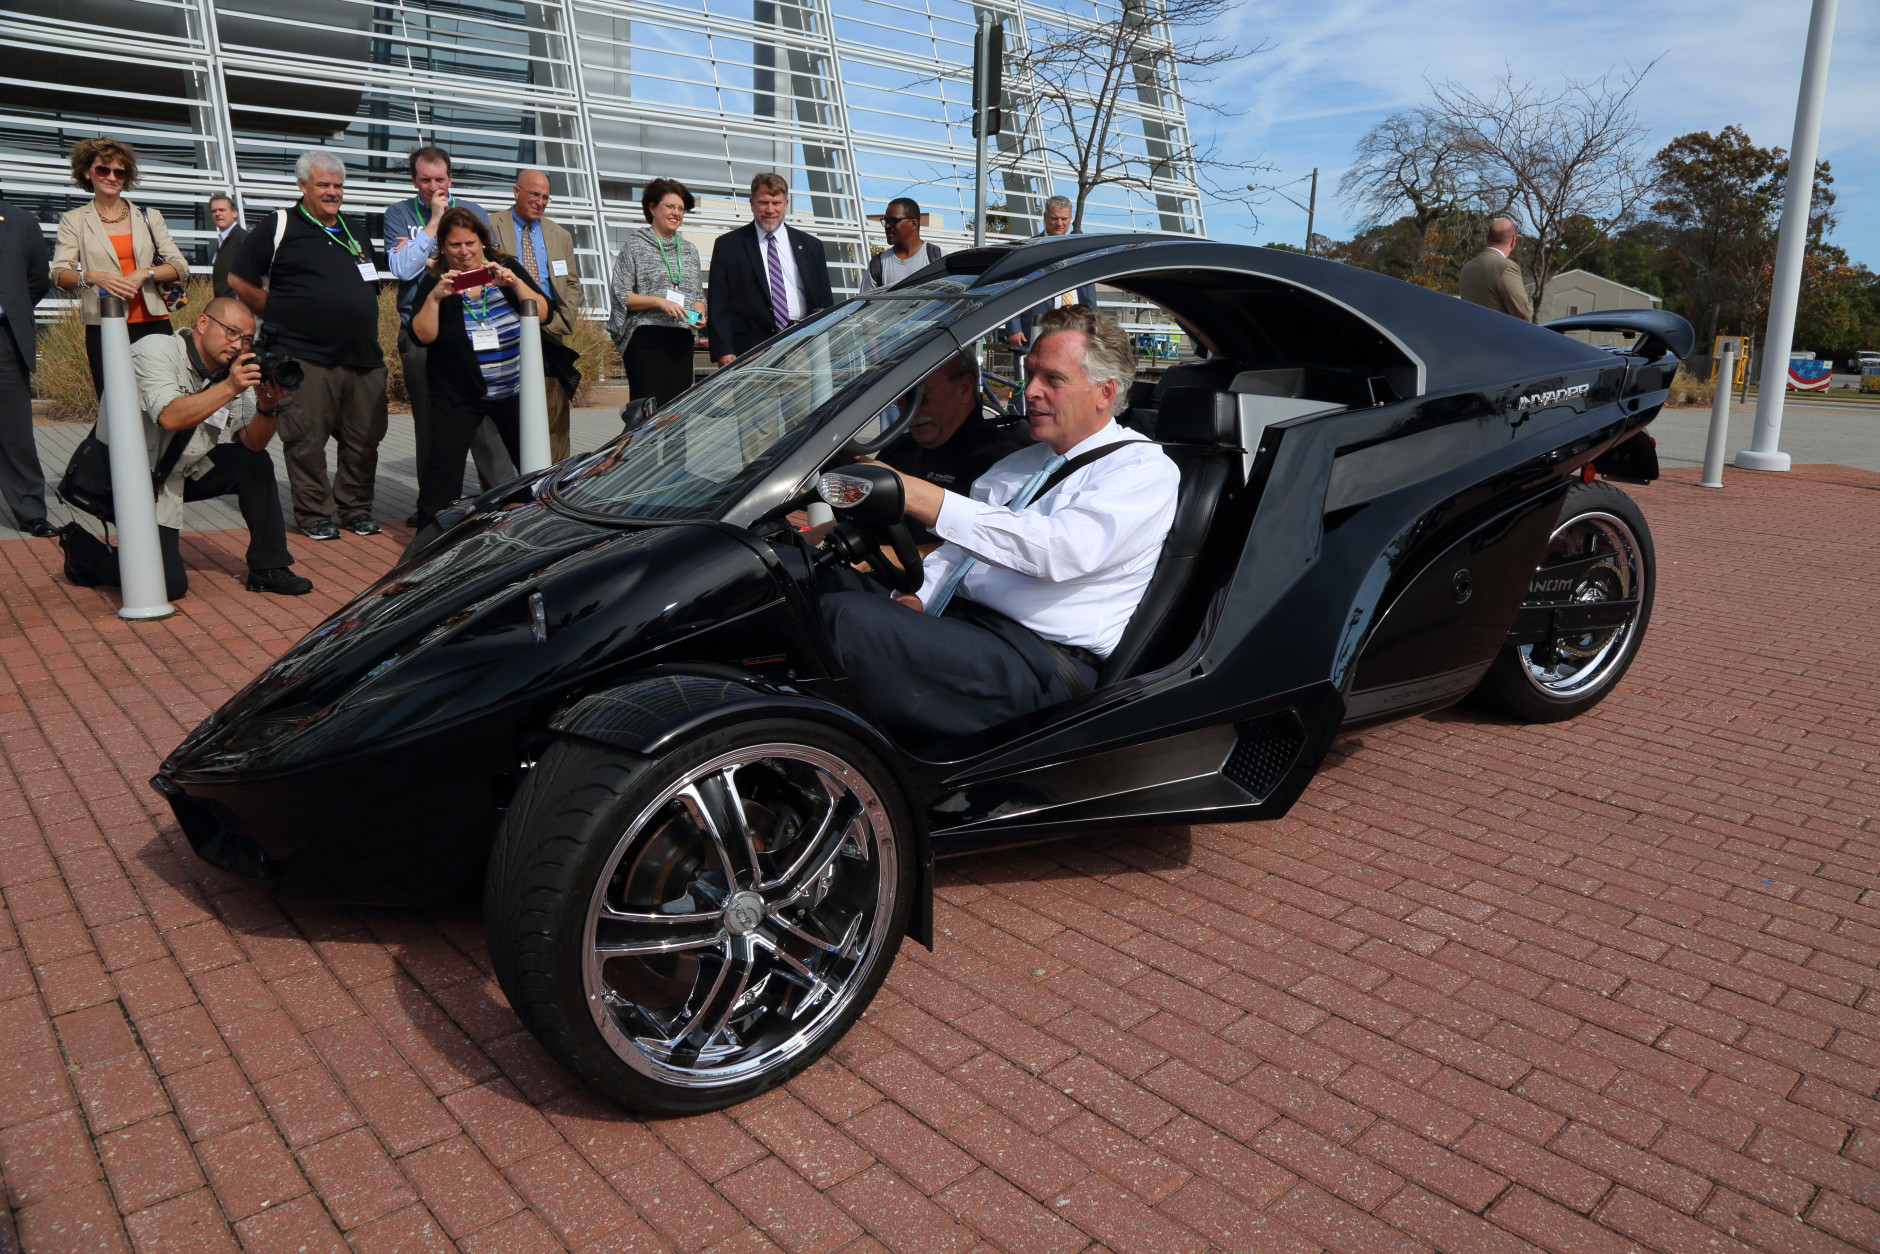 Virginia Gov. Terry McAuliffe test drives a Tanom Motors Invader at the Virginia 2015 Governor's Transportation Conference. (Photo by D. Allen Covey, VDOT/D. Allen Covey)